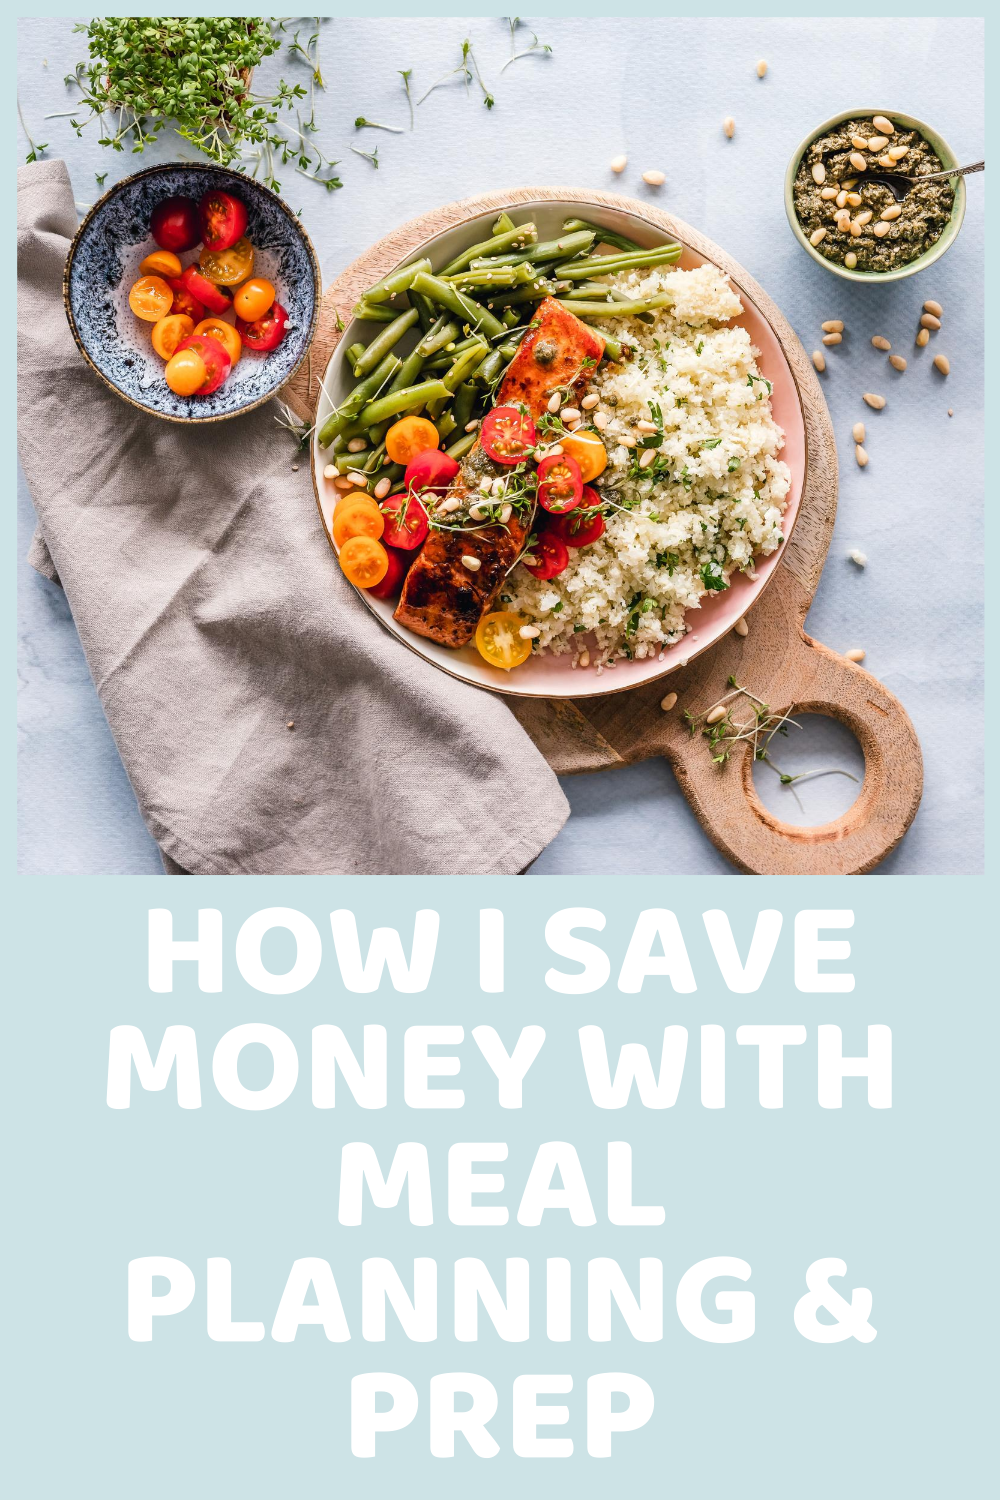 How I Save Money With Meal Planning & Prep